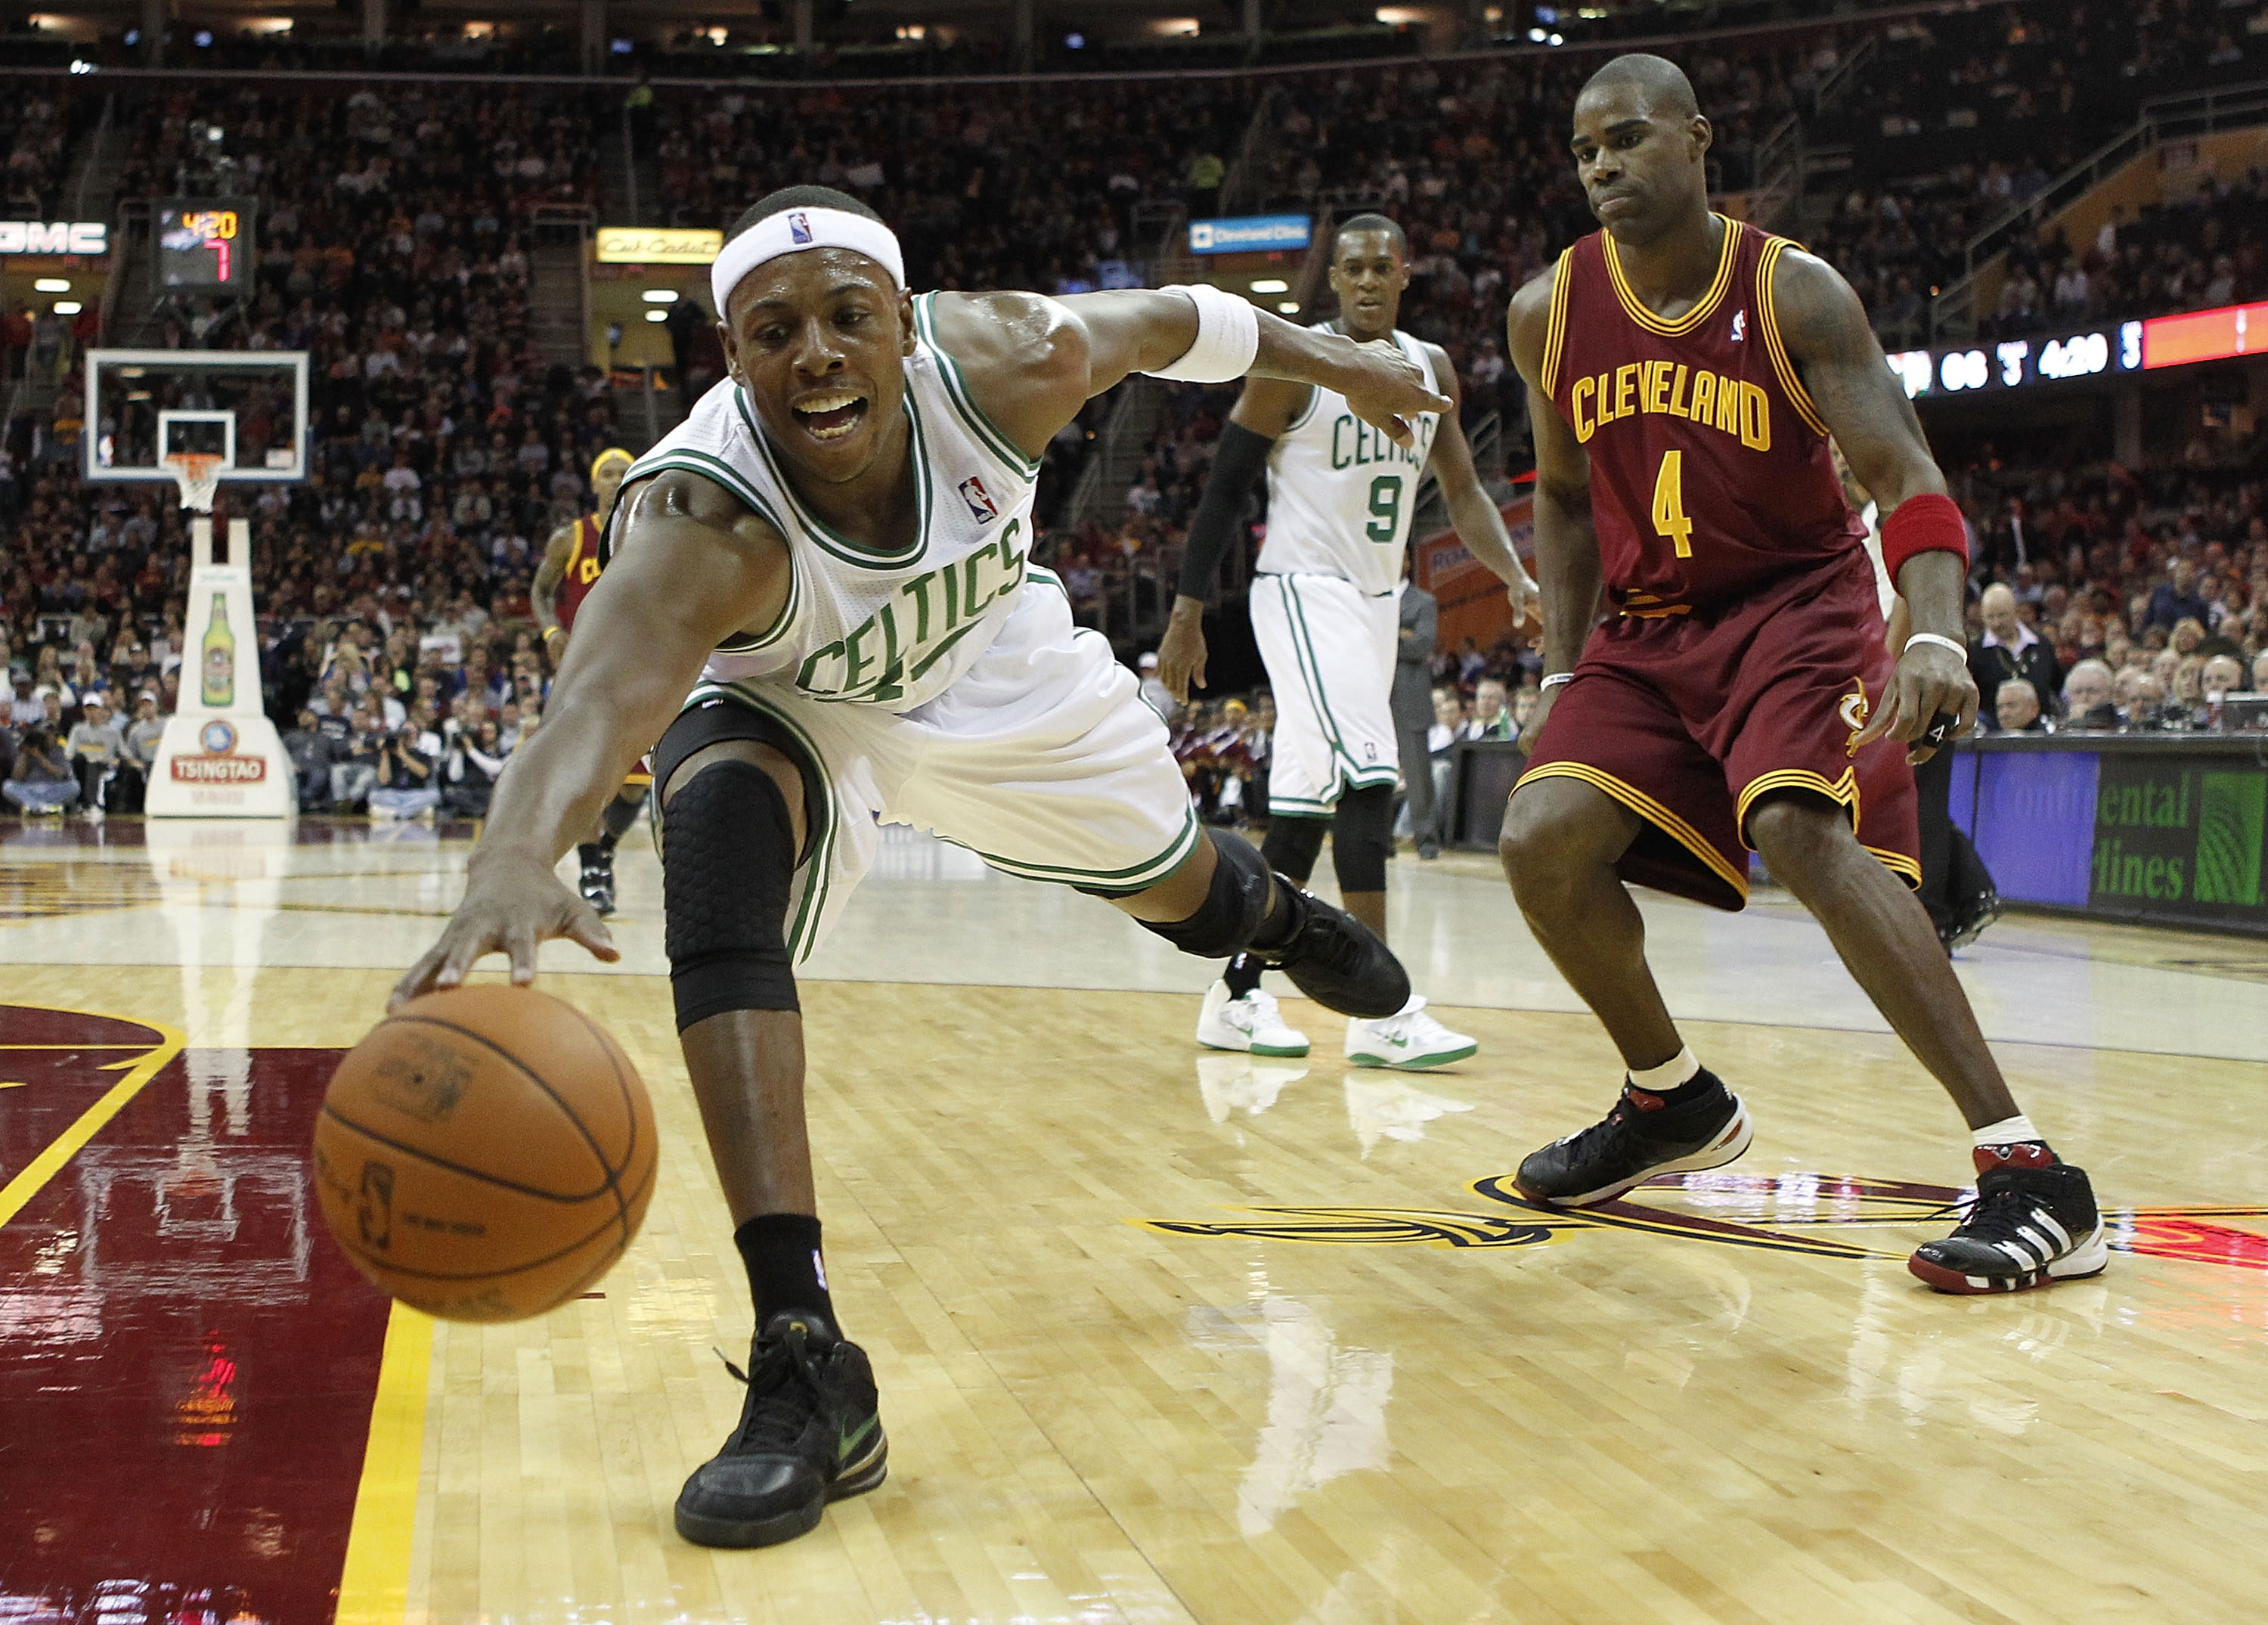 CLEVELAND - OCTOBER 27: Paul Pierce #24 of the Boston Celtics tries to keep the ball from going out of bounds in front of Antawn Jamison #4 at Quicken Loans Arena on October 27, 2010 in Cleveland, Ohio. Cleveland won the game 95-87.  (Photo by Gregory Sha